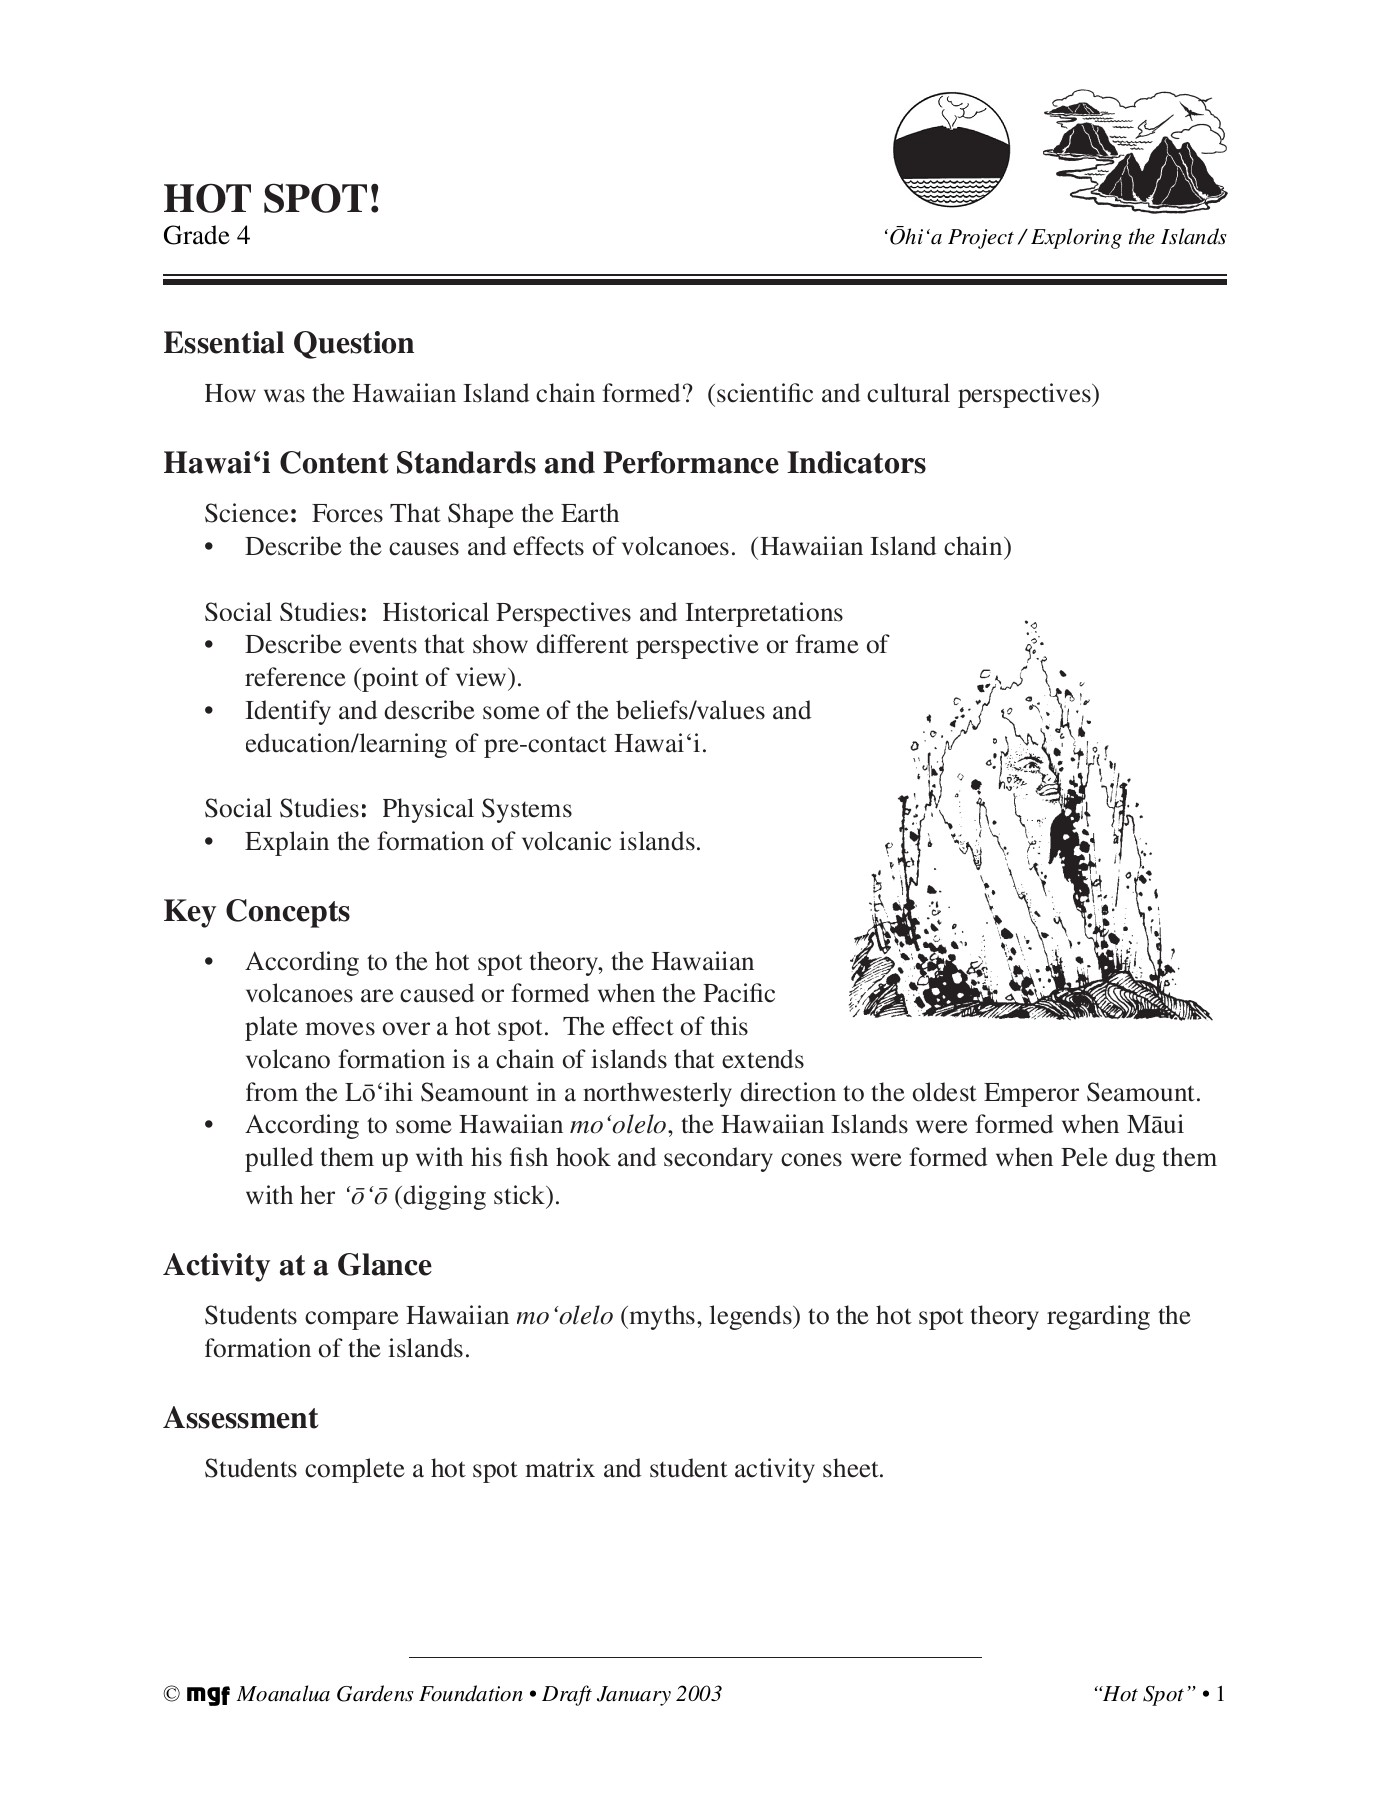 HOT SPOT! - Moanalua Gardens Foundations Pages 1 - 11 - Text